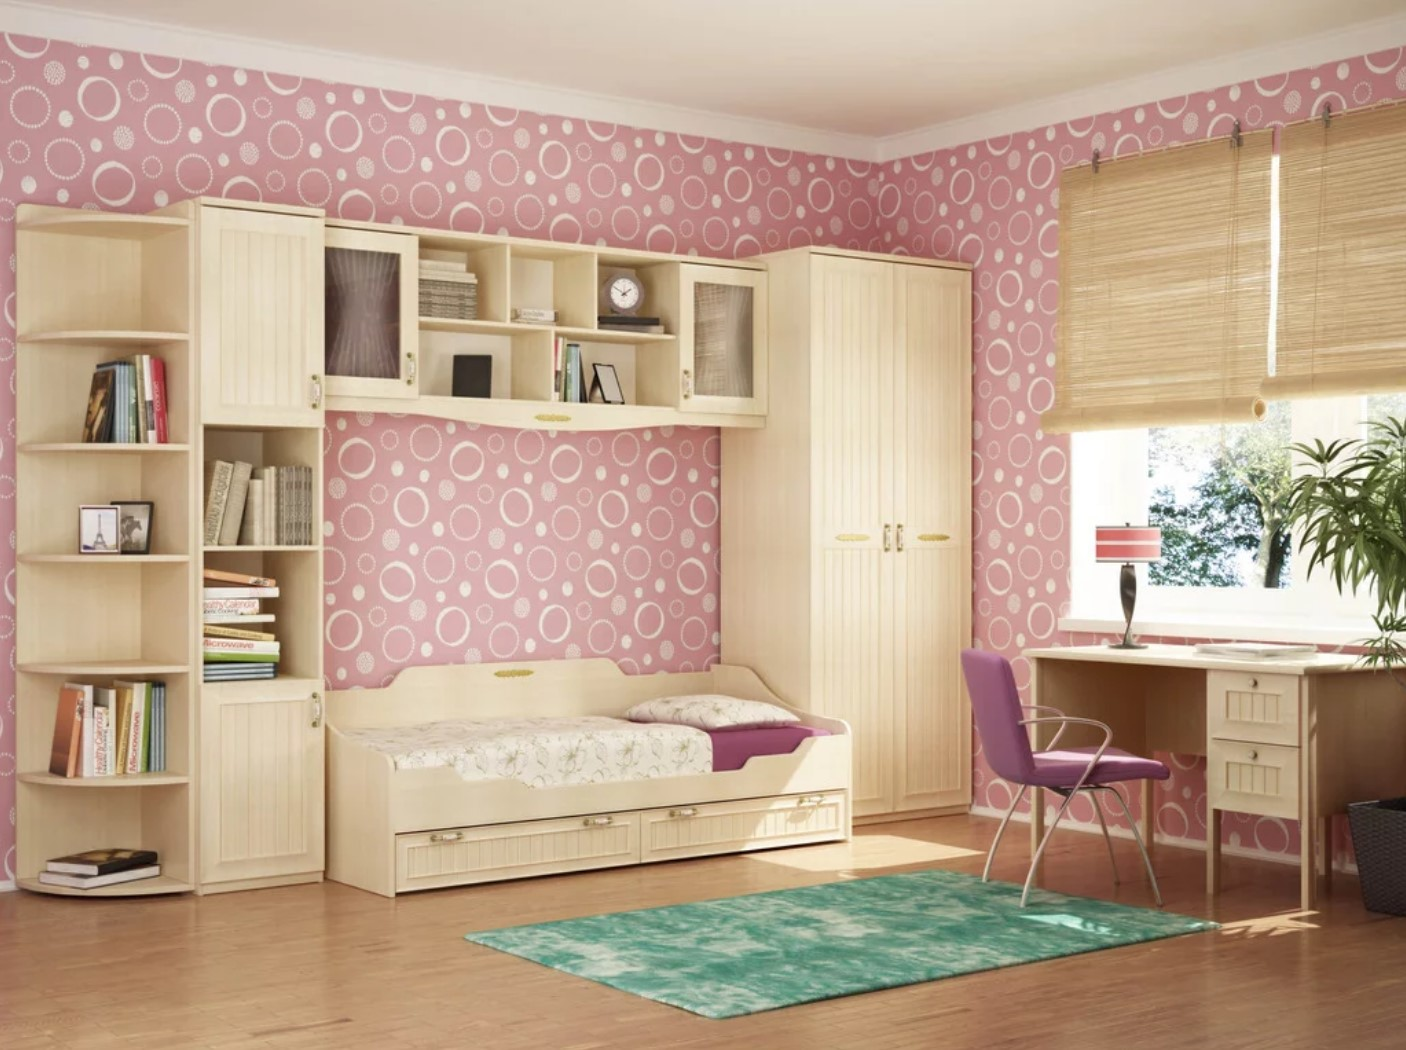 Room with a wall decorated with pink semicircles